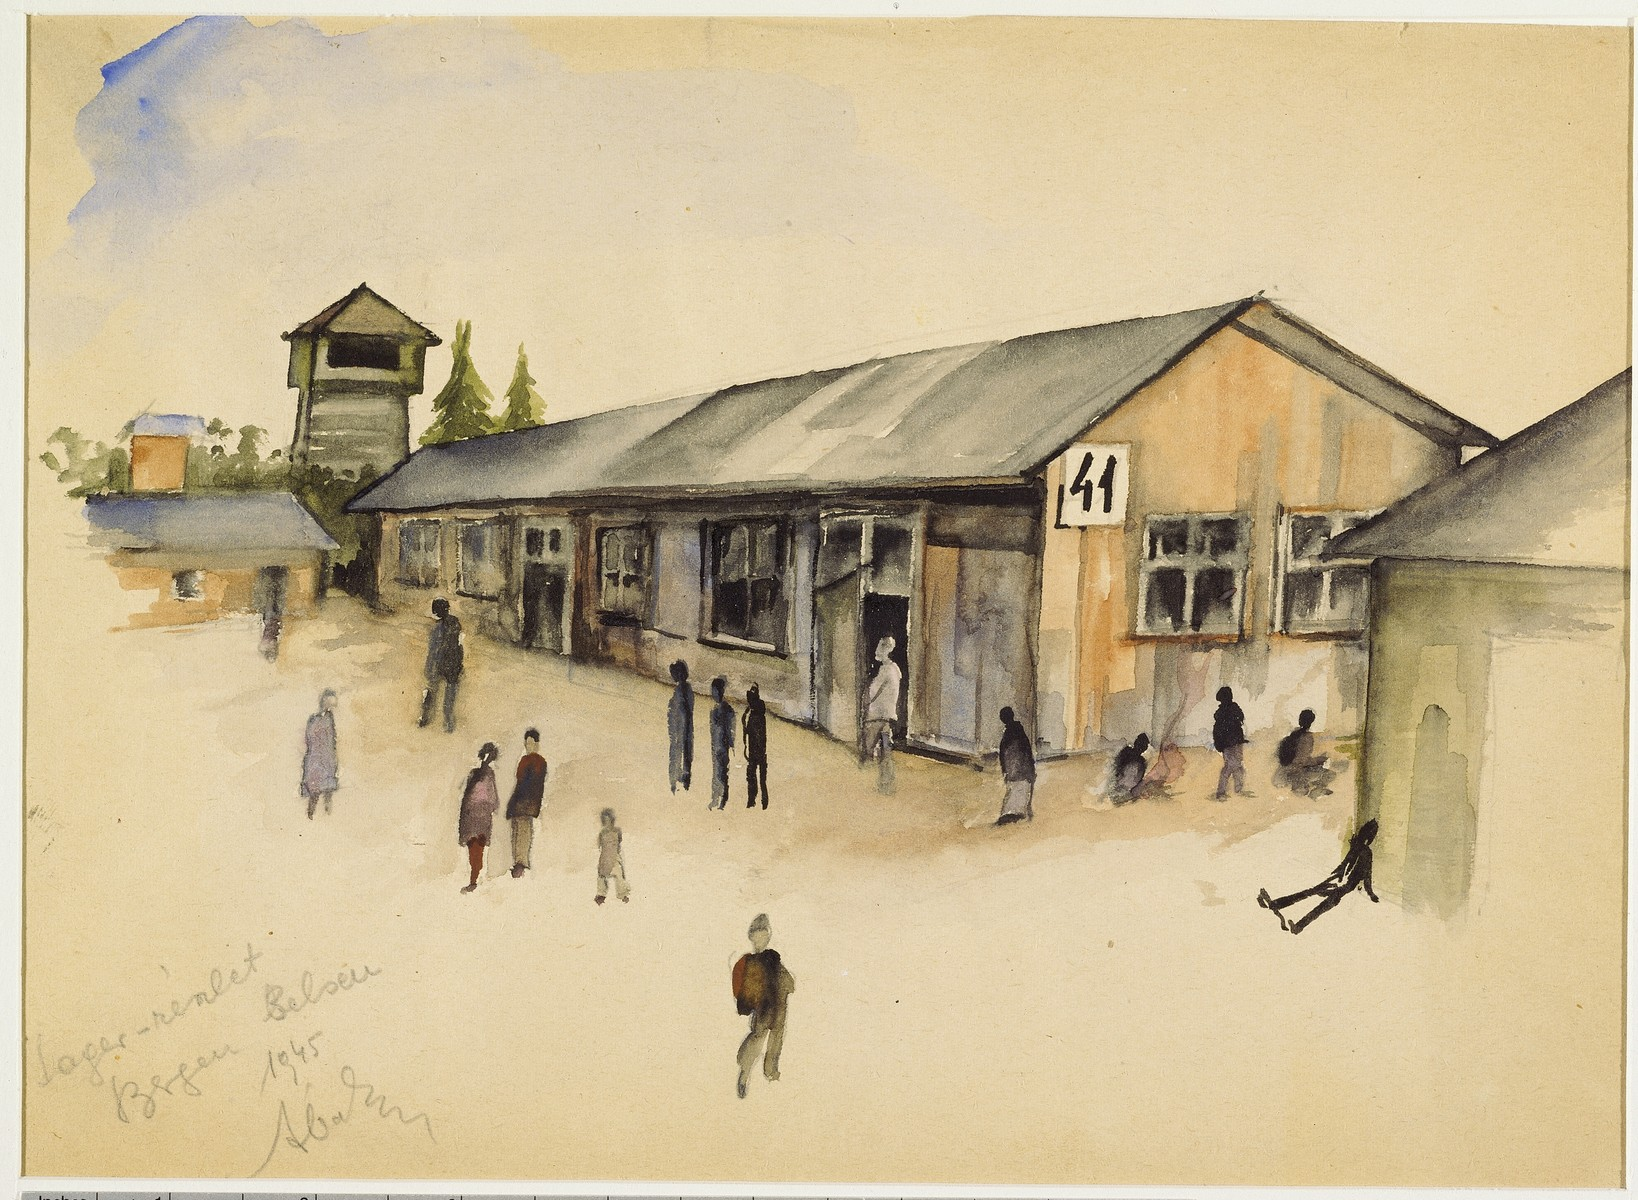 """Part of the Lager"" (Bergen Belsen) by Ervin Abadi. Watercolor, ink and colored graphite pencil drawing.  Ervin Abadi, a Hungarian Jew from Budapest, was an aspiring young artist when WWII began.  He was drafted into the Hungarian labor service in the early 1940s.  Abadi managed to escape, but  was recaptured and immediately deported to Bergen-Belsen.  When the camp was liberated, his condition was such that he required extended hospitalization.  During his convalescence, he created dozens of works of holocaust art, including ink drawings, pencil and ink sketches and  watercolors. After recuperating Abadi returned to Budapest, where he published a collection of his watercolors in 1946.  After becoming disillusioned with the communist regime in Hungary, he moved to Israel, where he continued to publish in Hungarian and Hebrew.  He died in Israel in 1980."